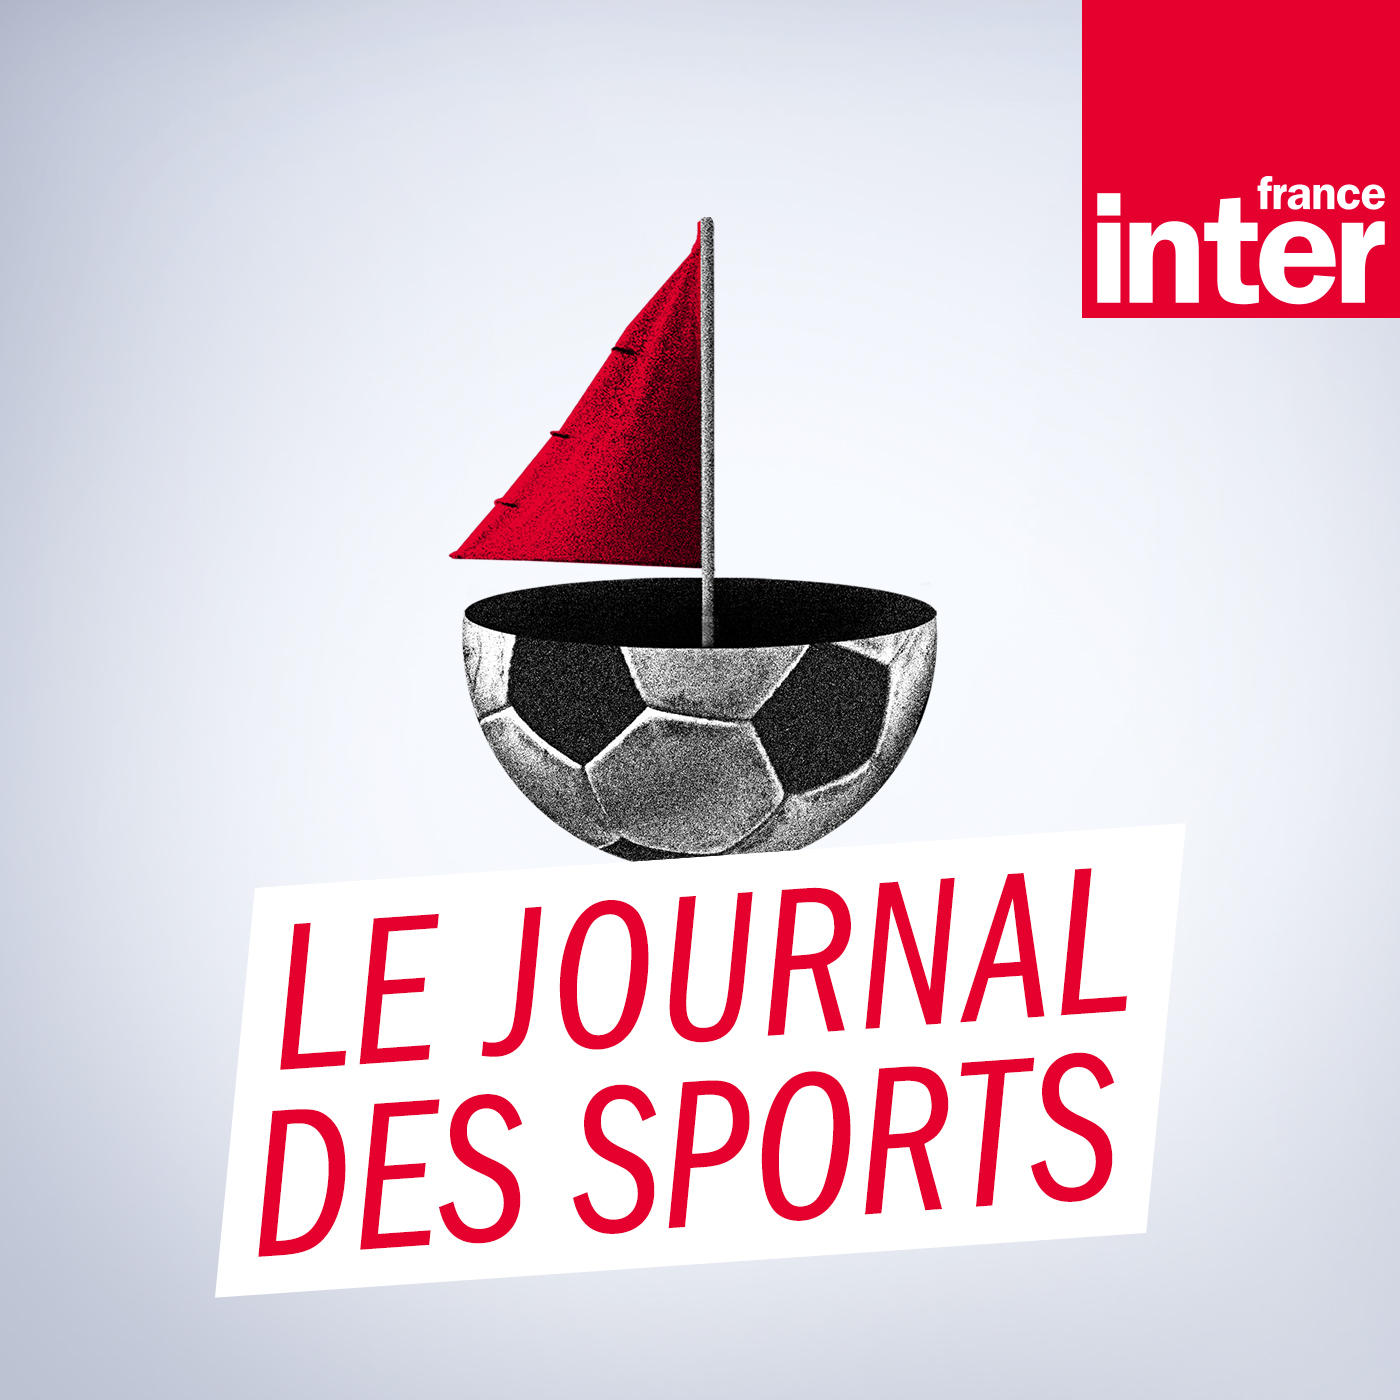 Le journal des sports